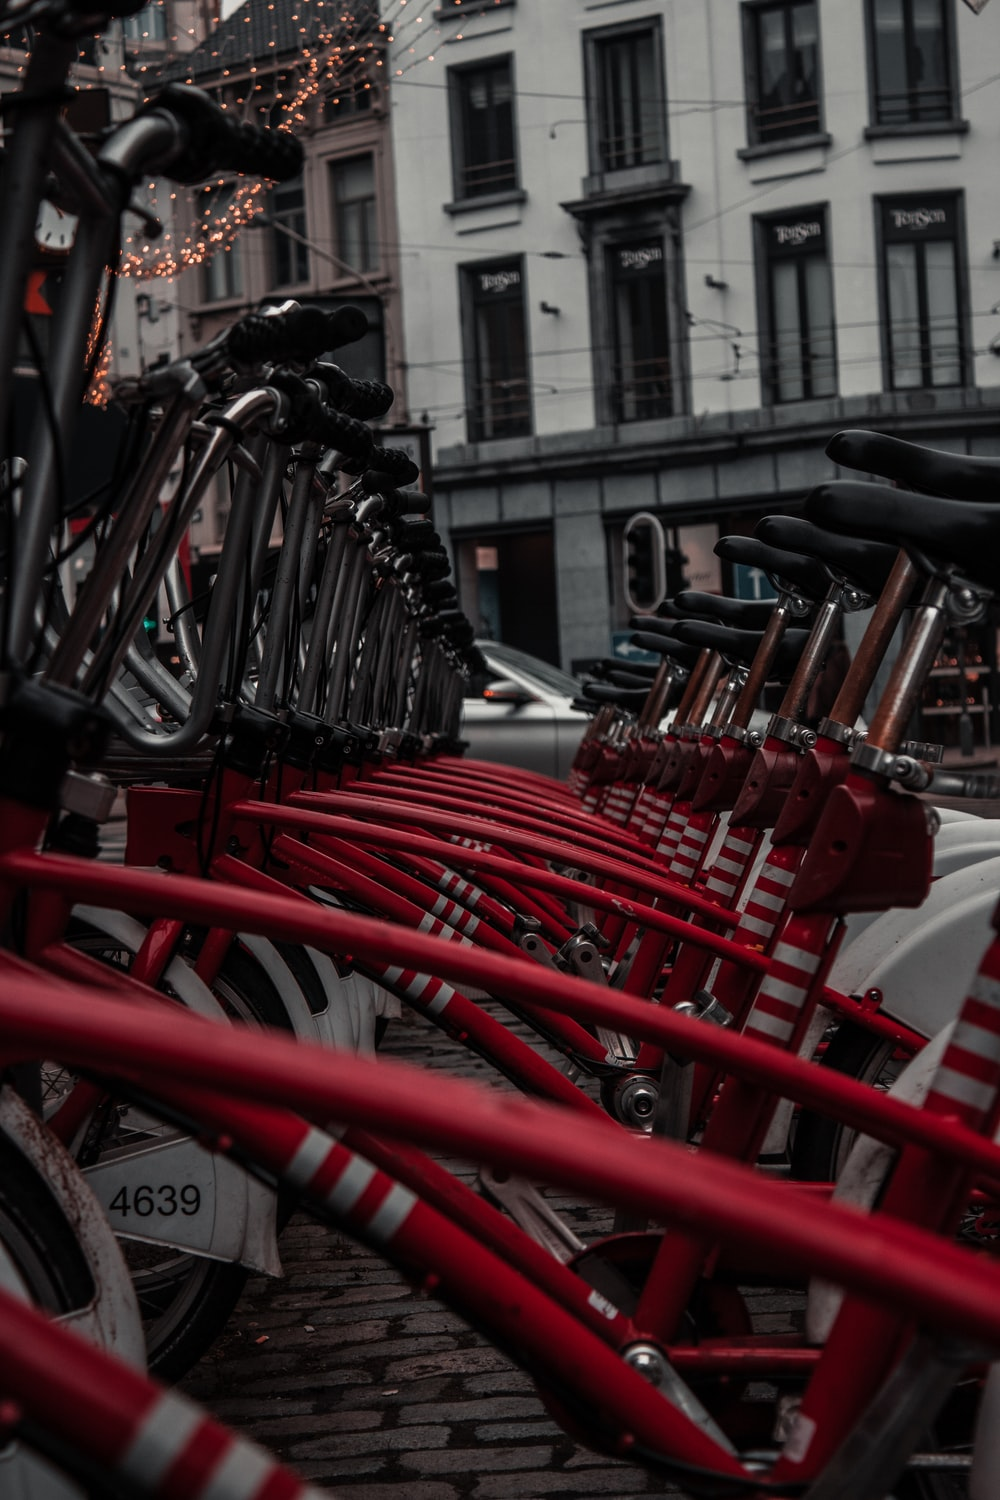 red and black bicycle parked on sidewalk during daytime